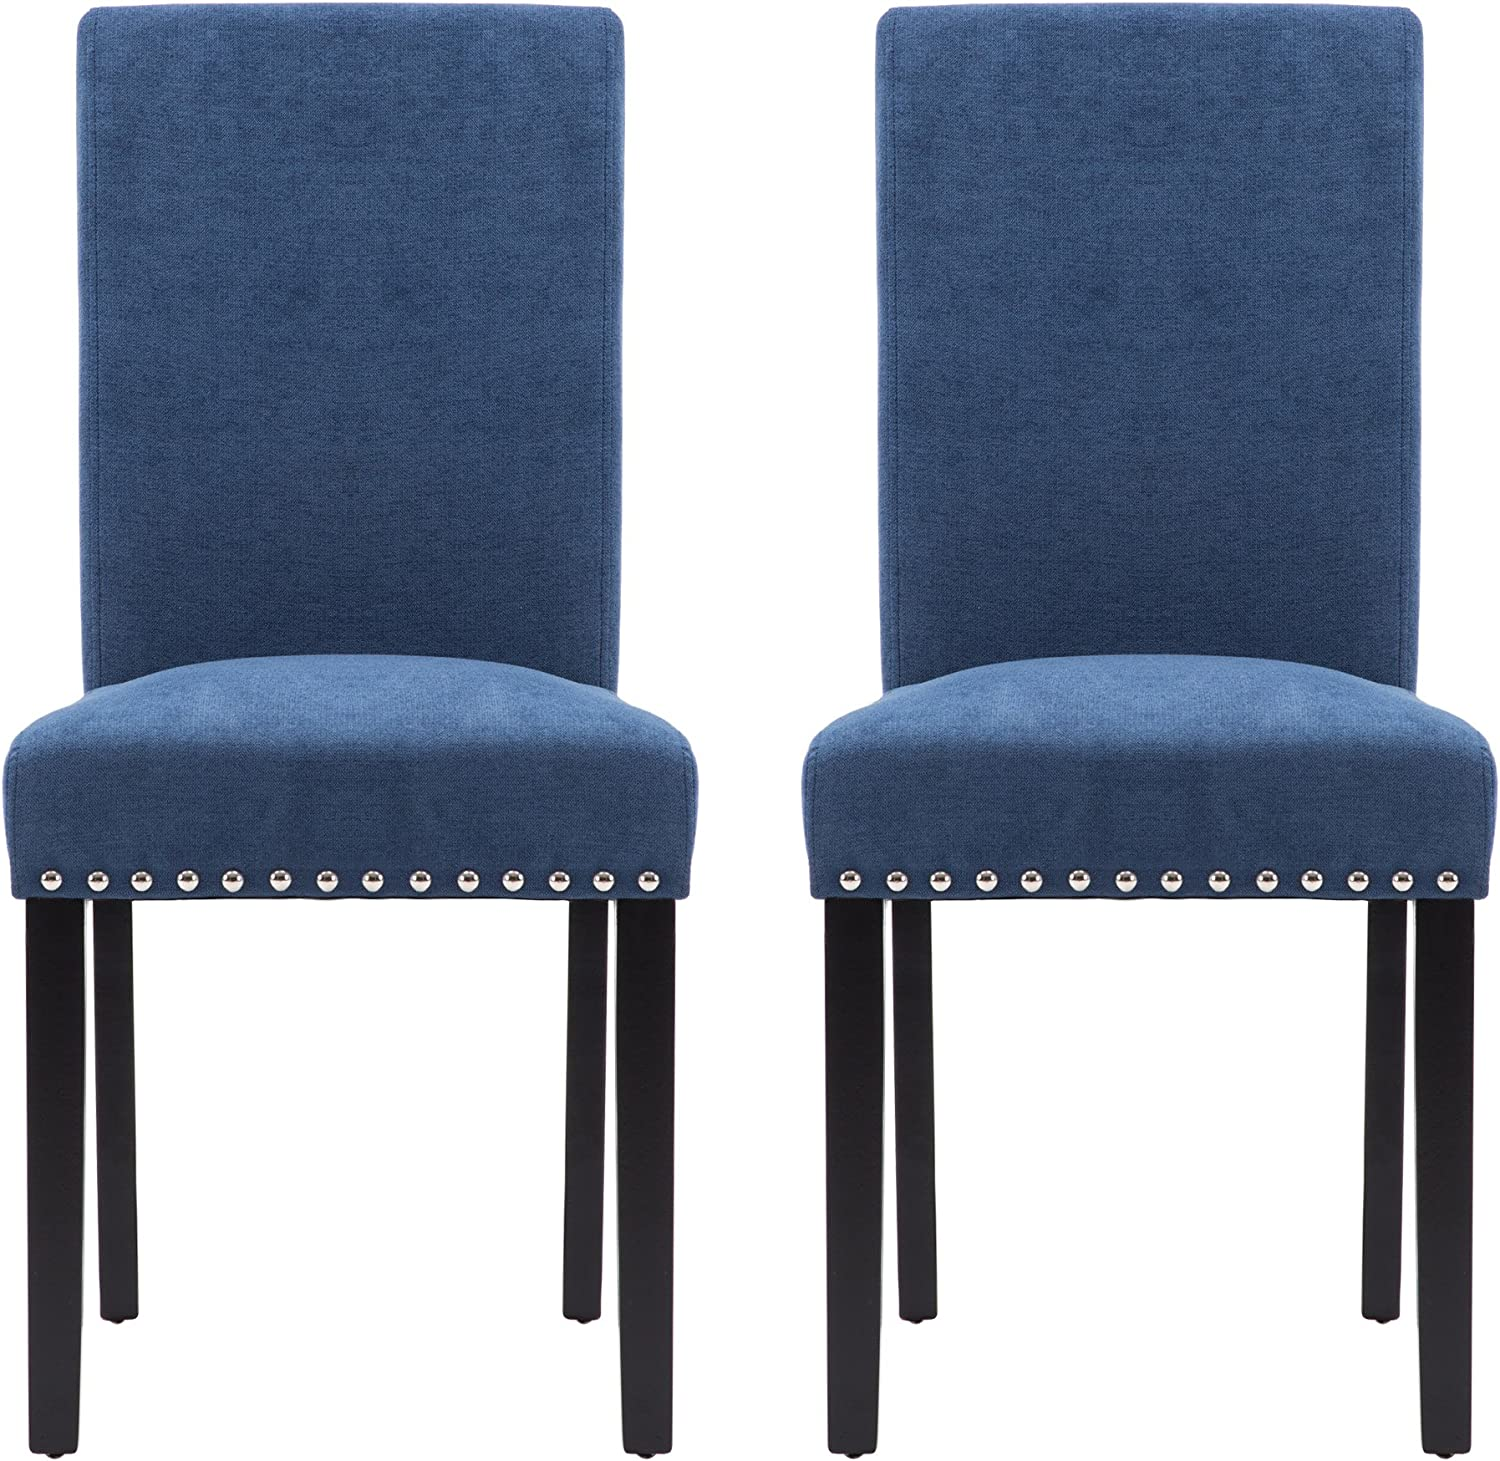 LSSPAID Upholstered Parsons Dining Chair with Polished Nailhead Wood Legs in Blue,Set of 2